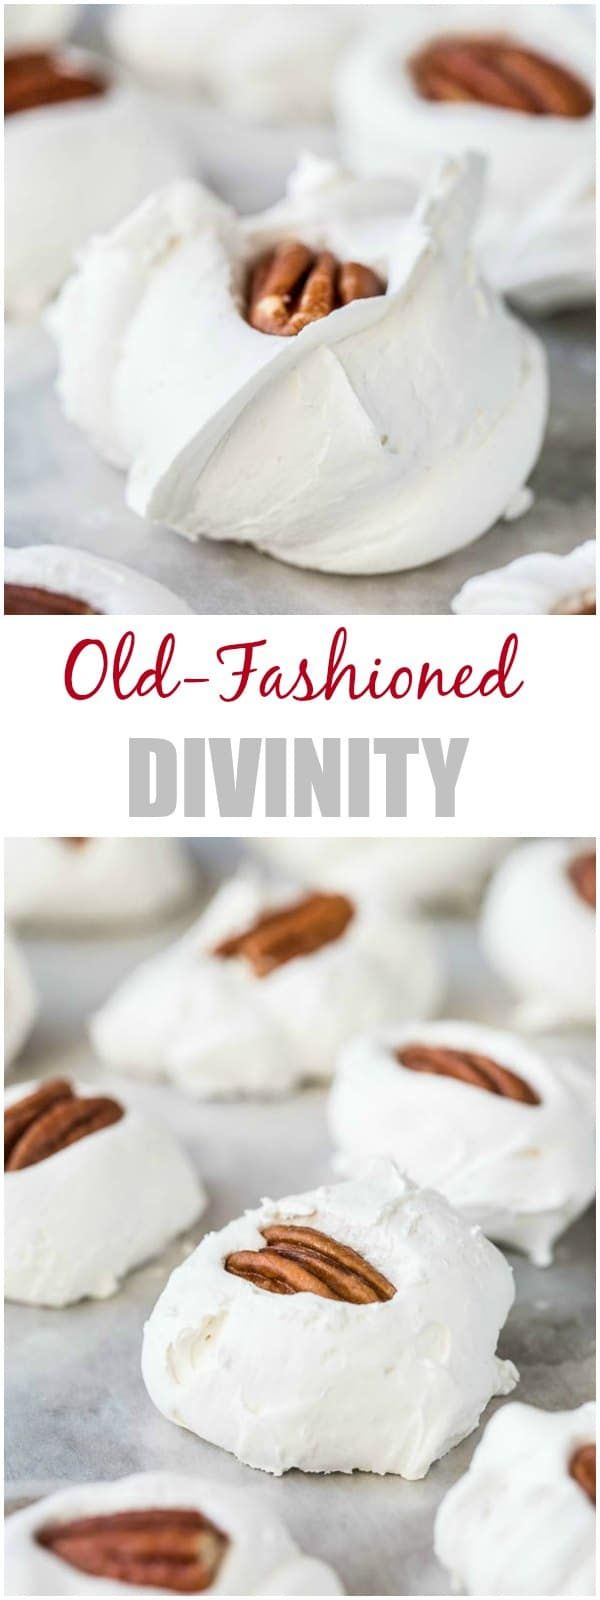 Nothing brings holiday cheer quite like Old-Fashioned Divinity. Soft and fluffy, sweet and creamy, the name says it all. It's divine! #divinity #divinityrecipe #christmastreats